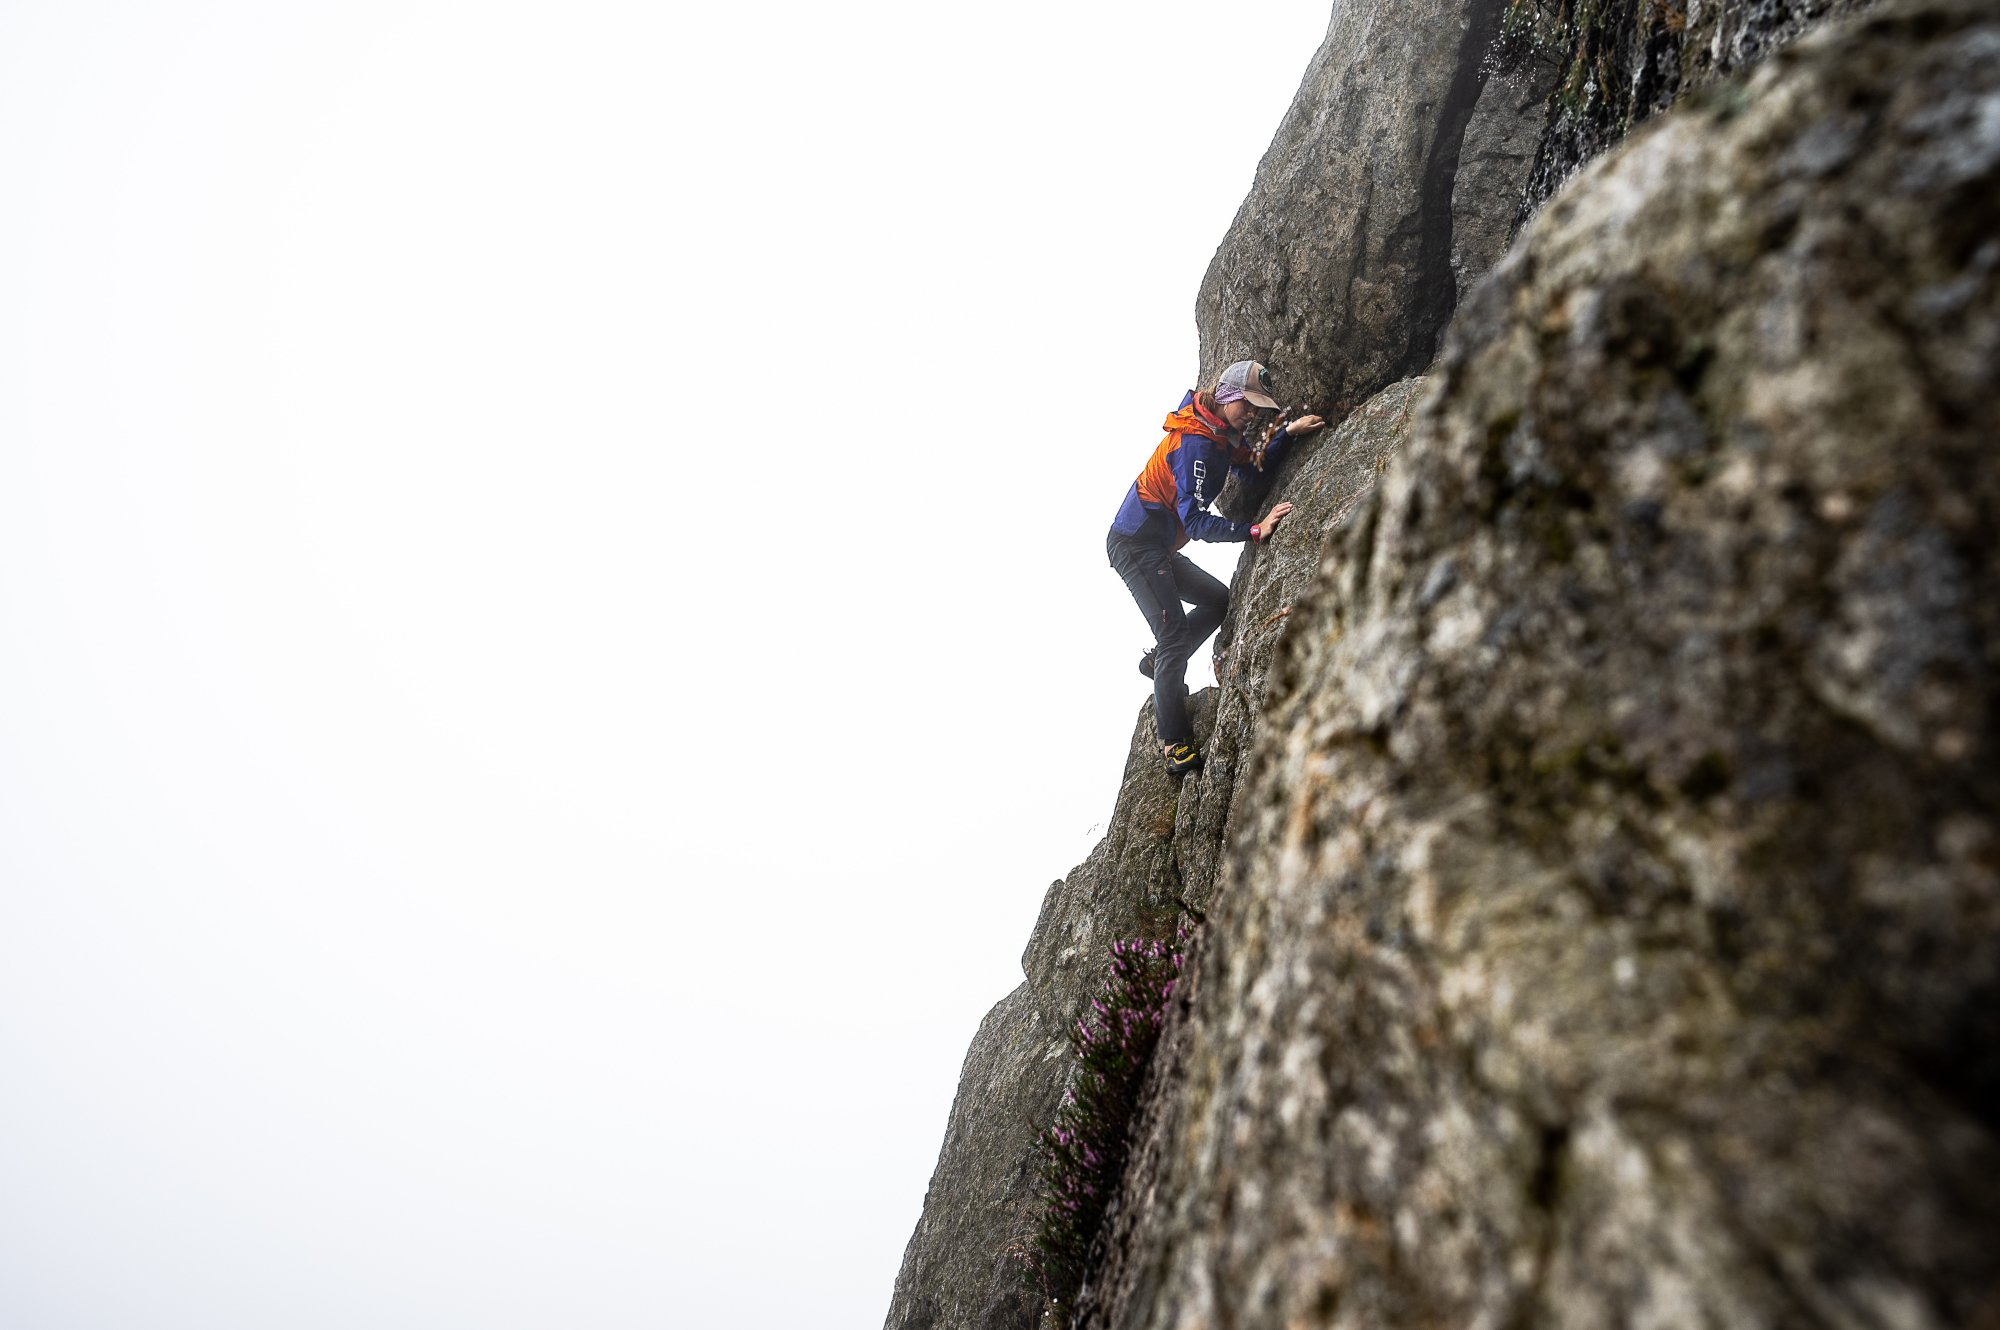 Anna tackles Grooved Arete, Tryfan